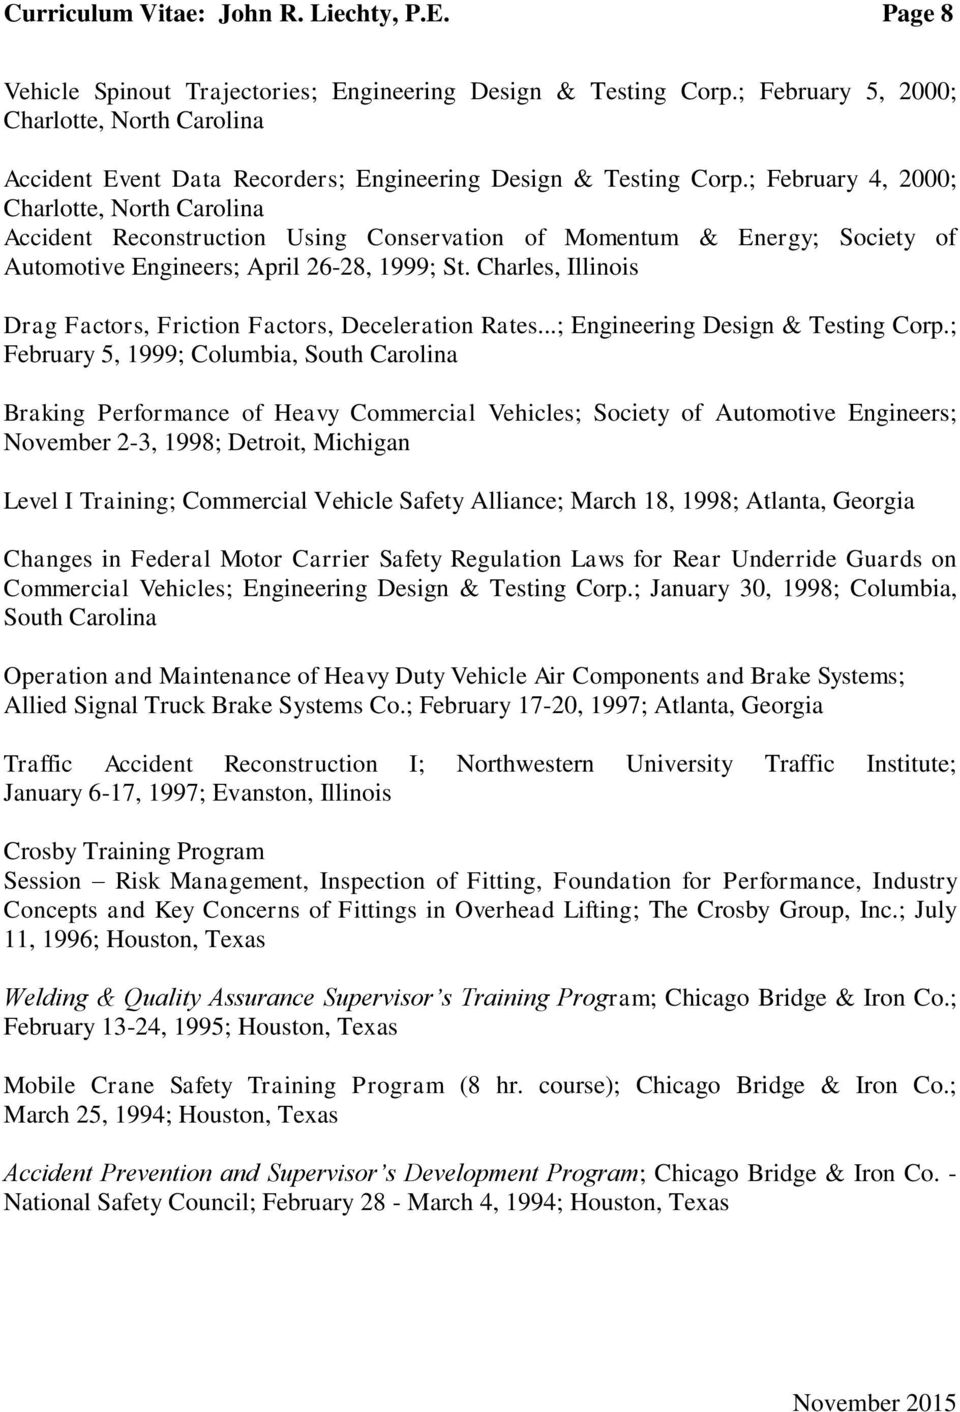 Mechanical Construction Rigging Engineer With Construction Services A Division Of Chicago Bridge Iron Co Pdf Free Download